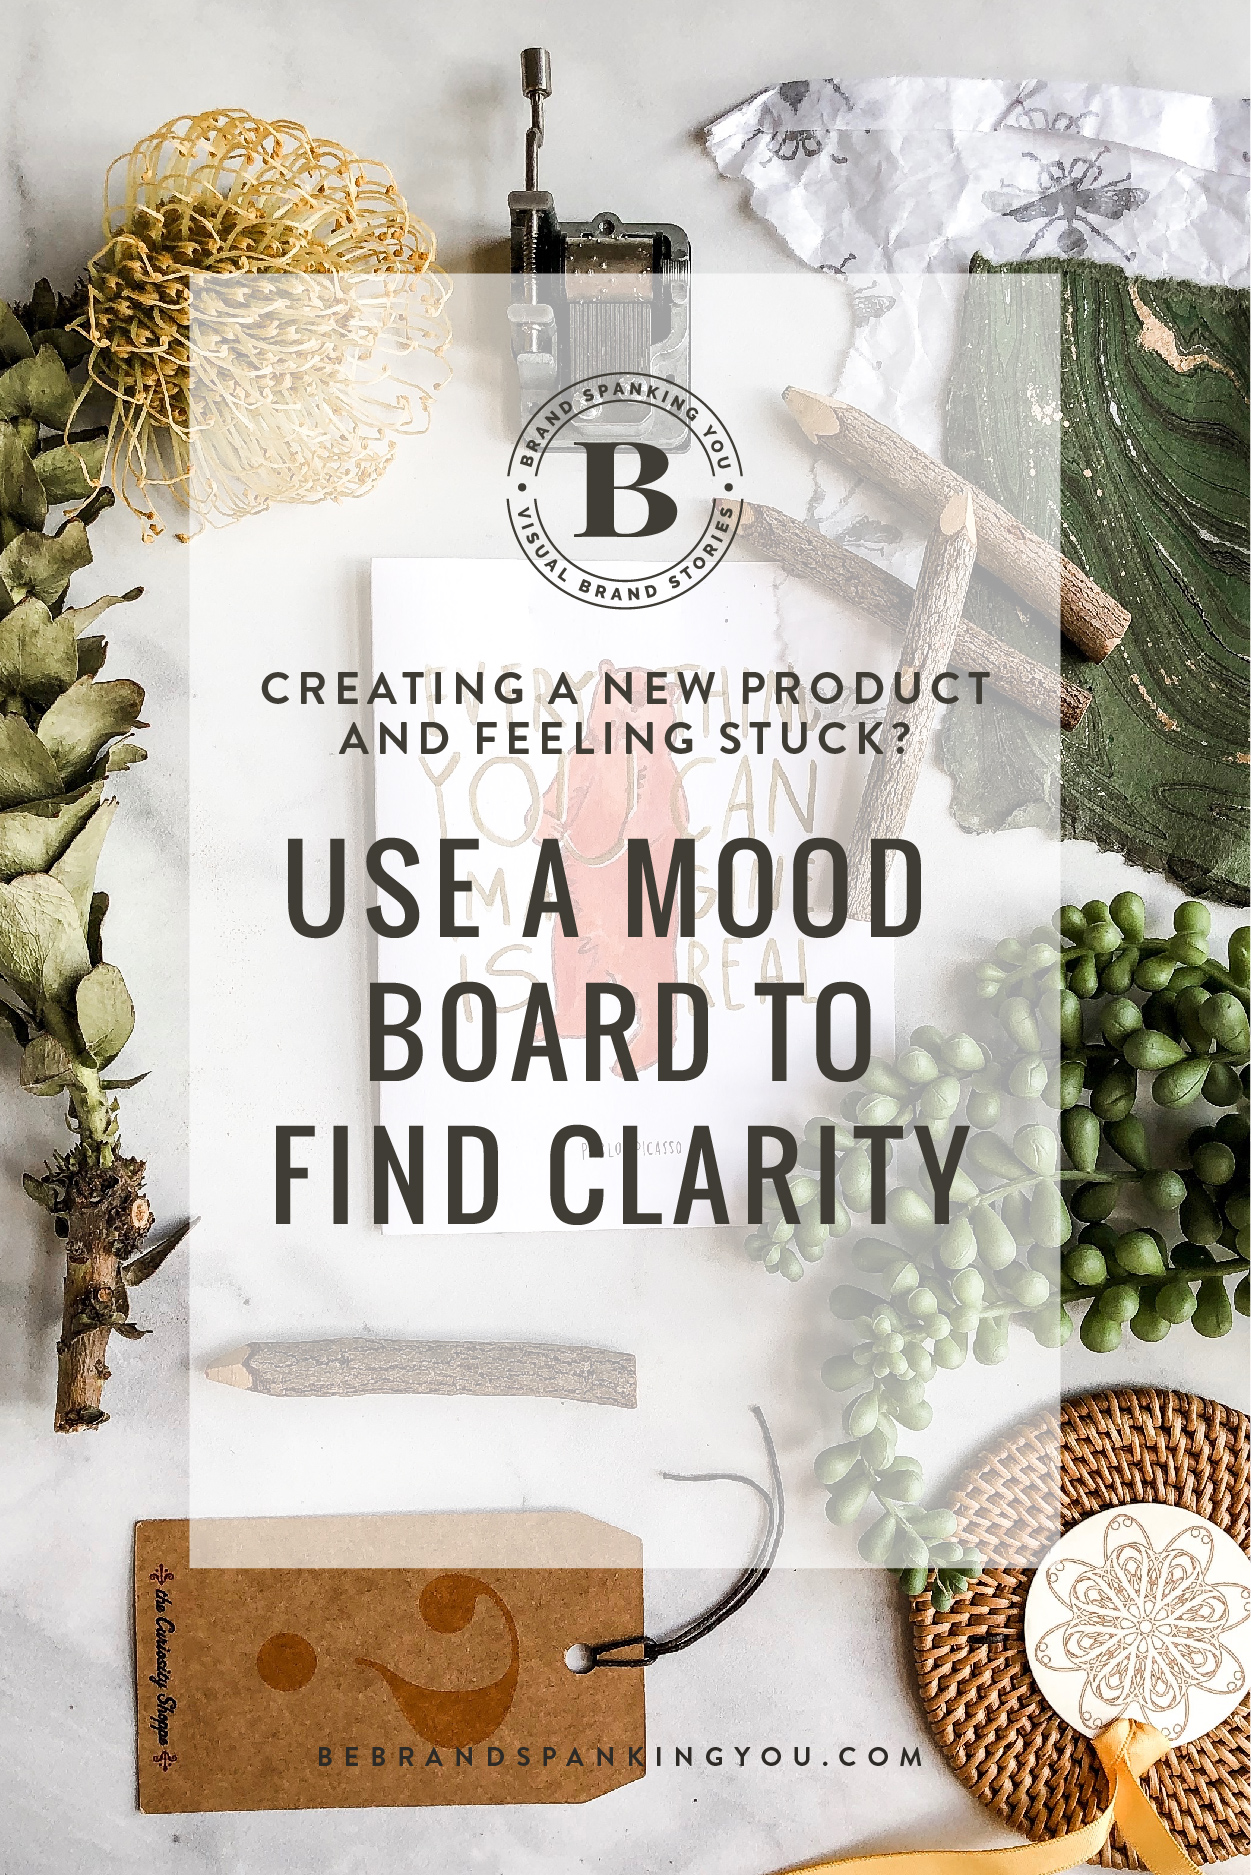 If you find yourself feeling stuck while creating a new product, service or offering, a mood board might help you find some clarity.